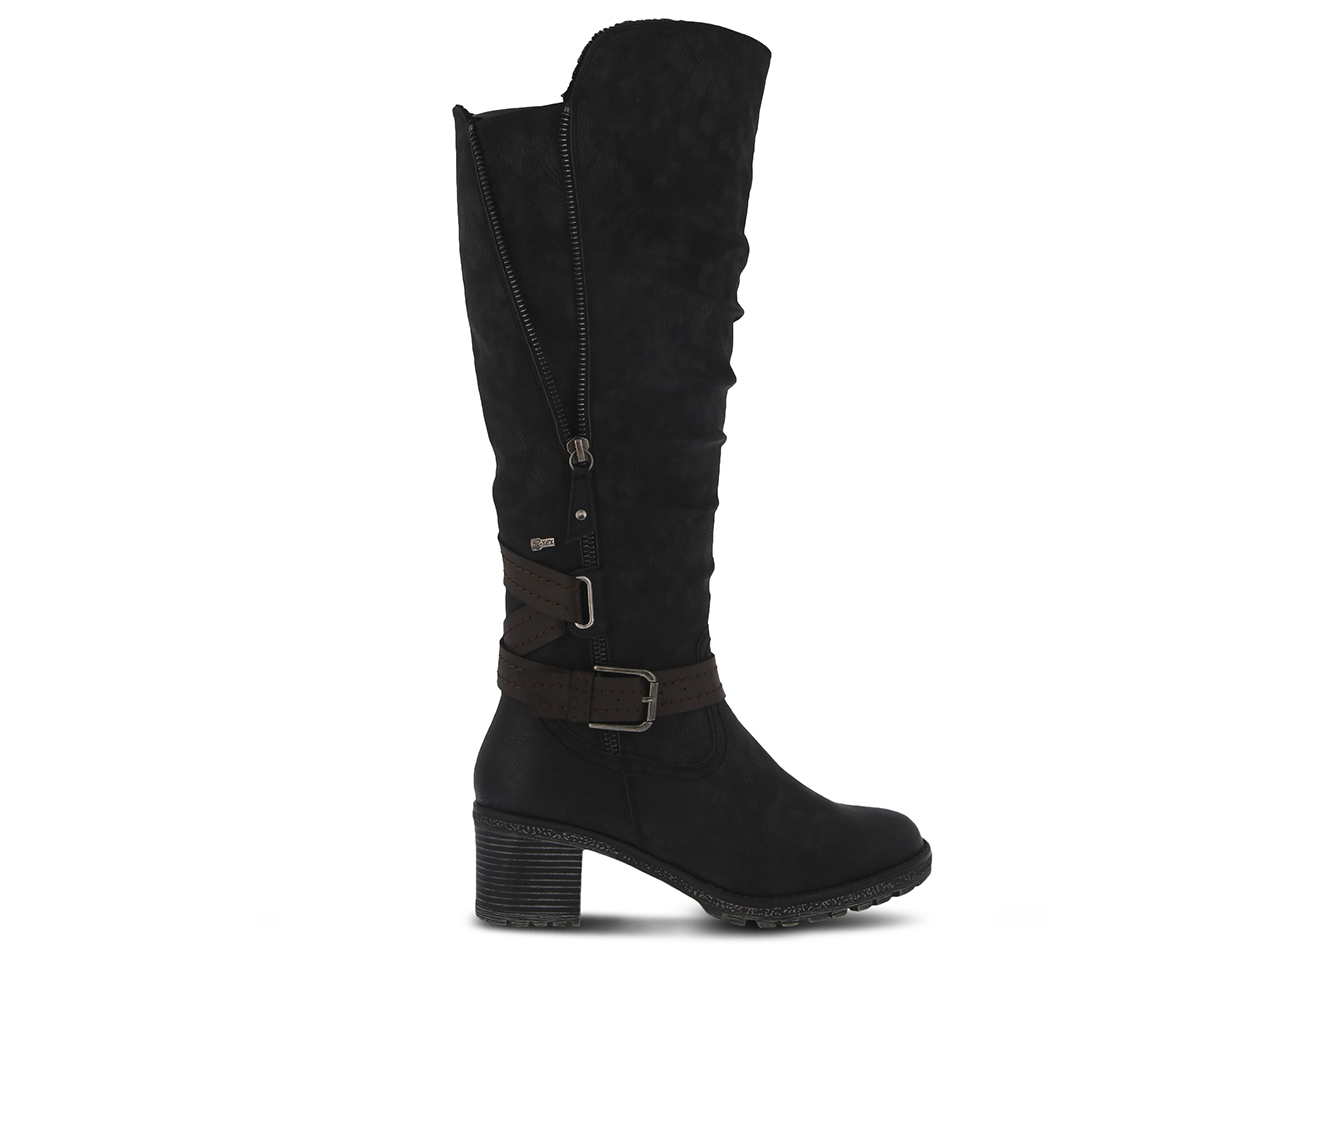 SPRING STEP Gemisola Women's Boots (Black Faux Leather)